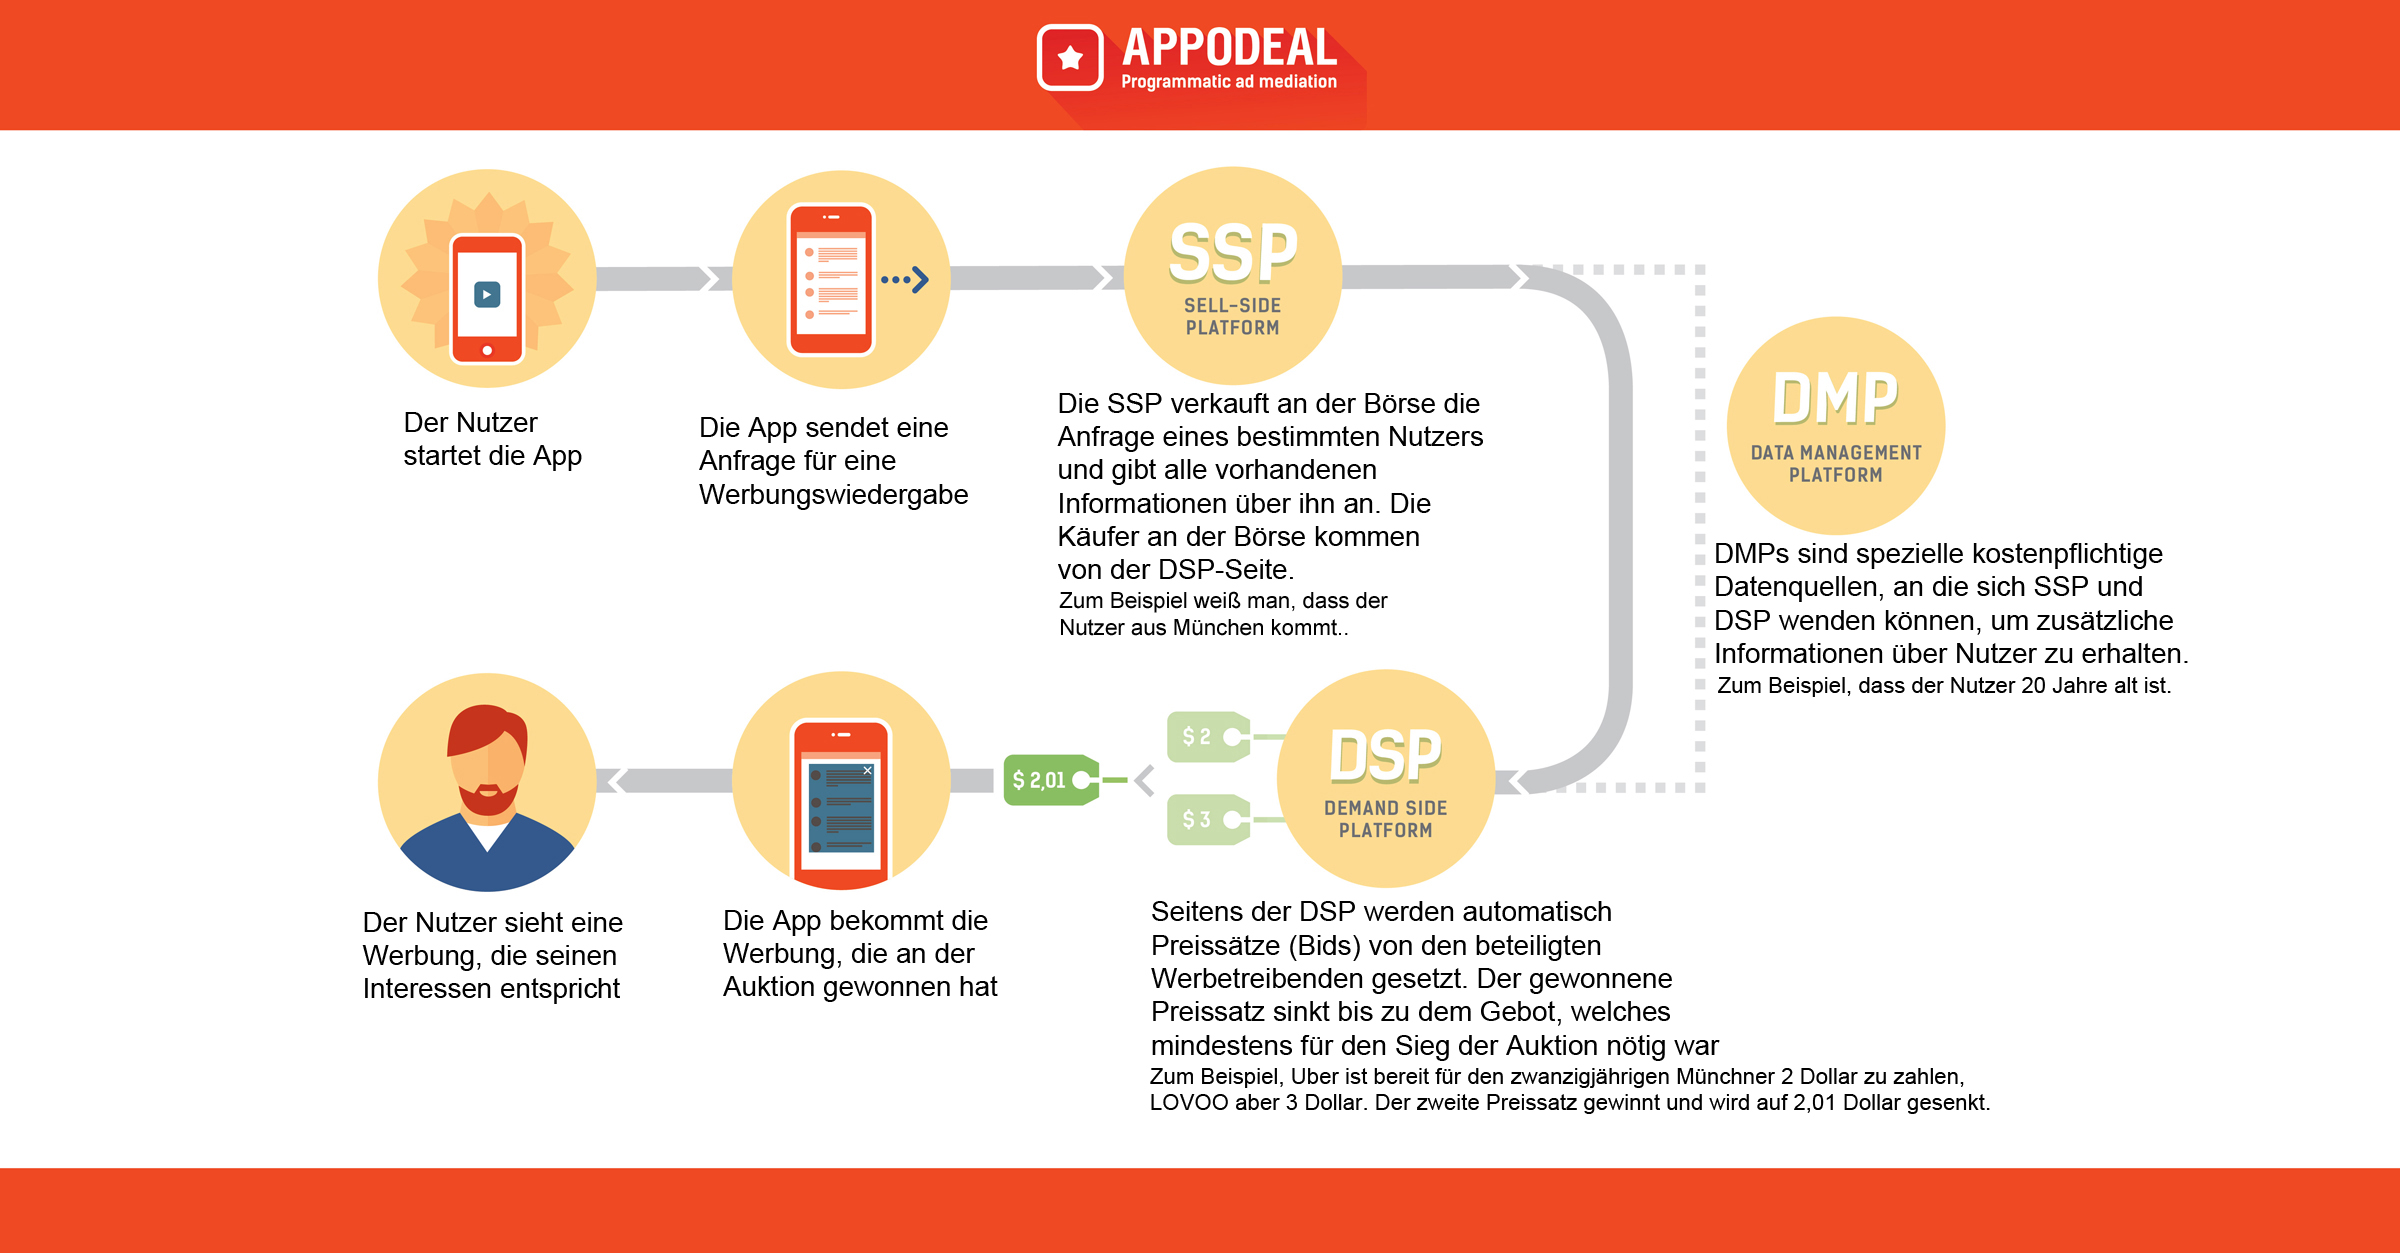 Infografik von Appodeal zu Real-Time Bidding